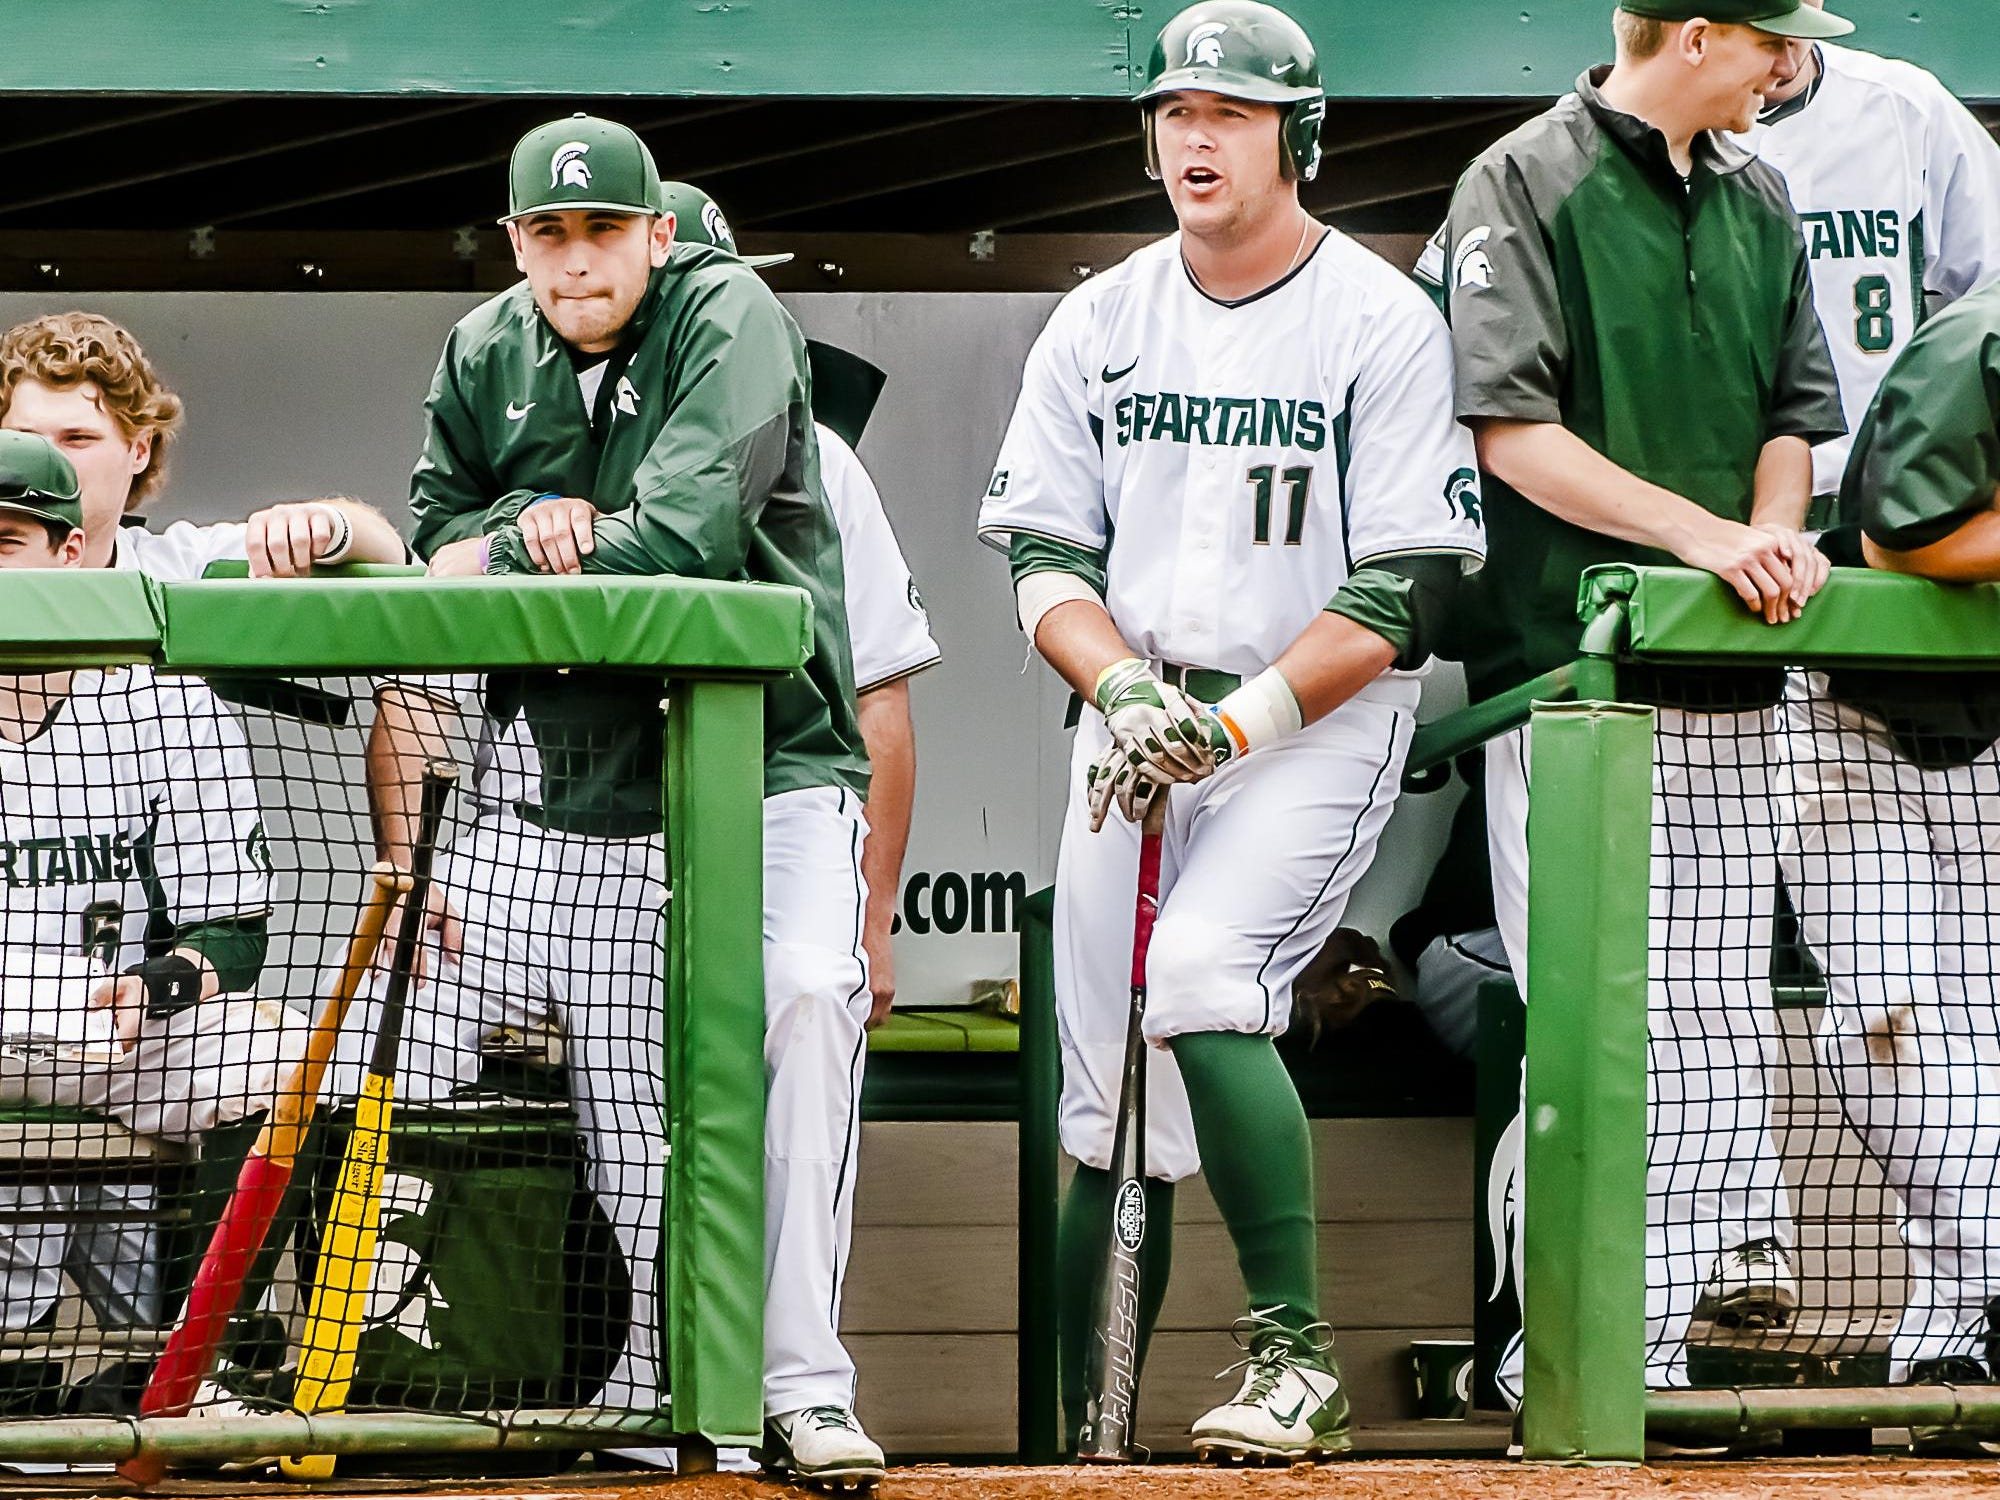 Blaise Salter (11) hit a career low .268 for MSU during his senior season this spring. A third-team All-America pick as a junior, Salter finished his career with a .308 batting average, 19 homers, 139 RBIs and a school record 55 doubles.